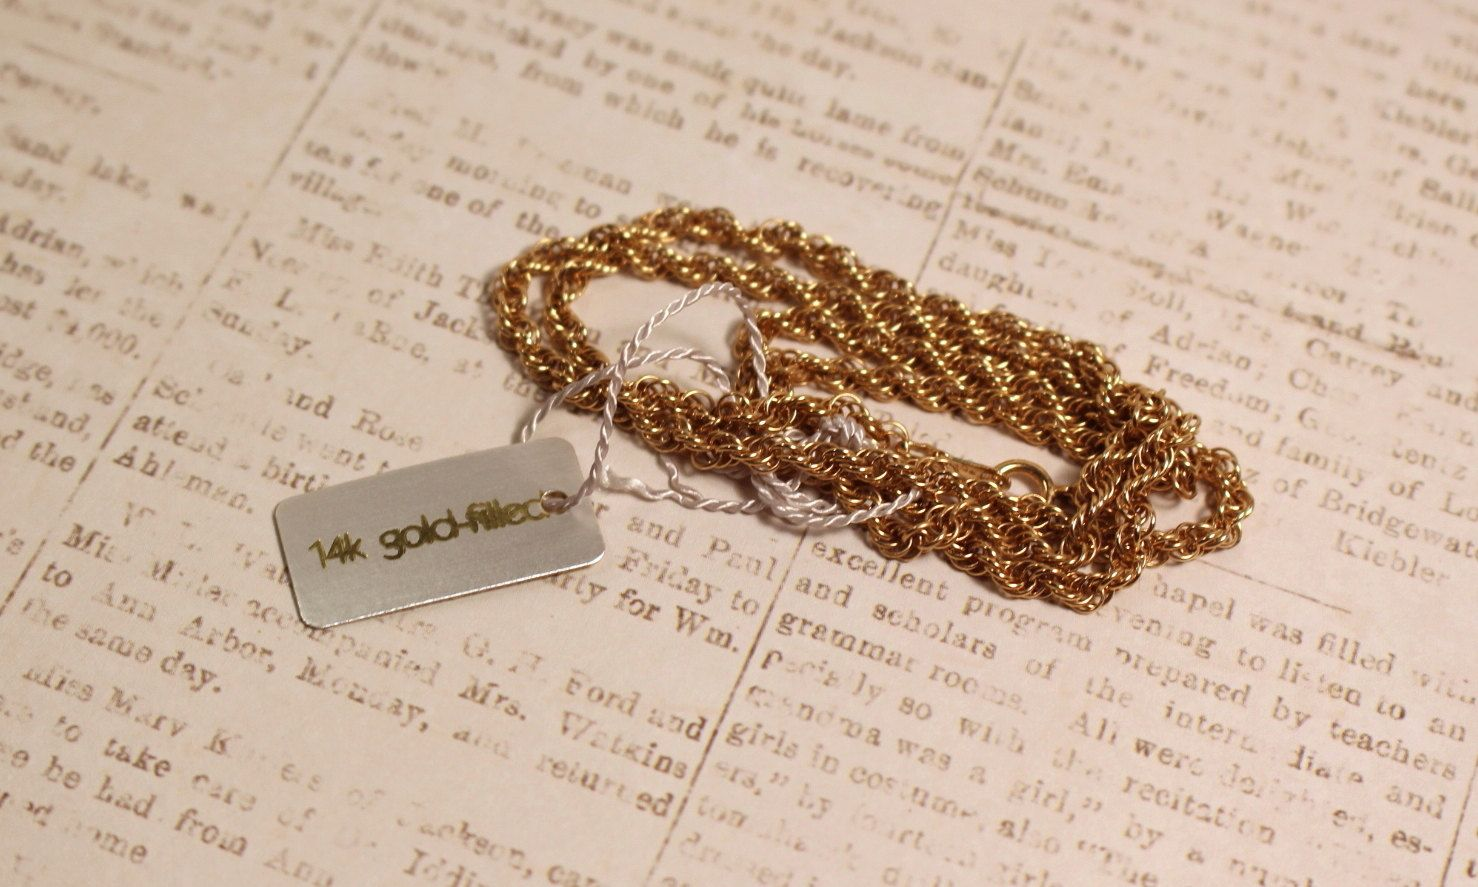 Avon 20 14K Gold Filled Rope Chain Vintage 1984 by FrogTears on